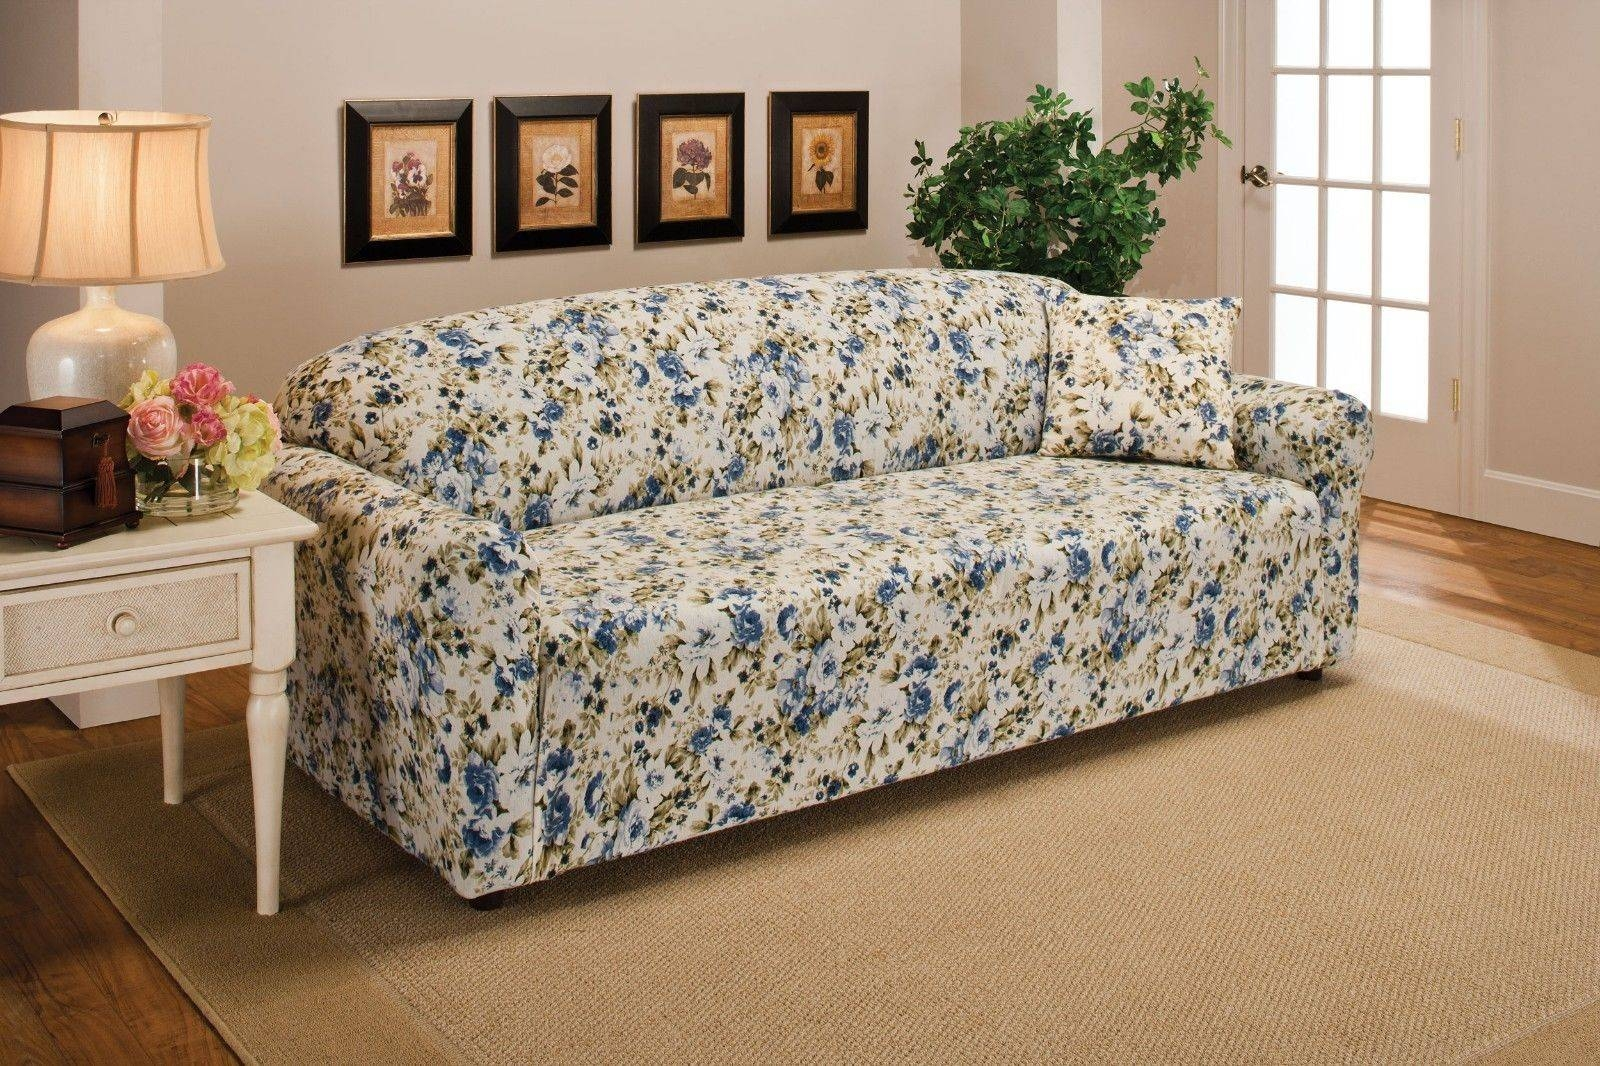 Blue Floral Flower Jersey Sofa Stretch Slipcover Couch Cover Chair regarding Floral Sofa Slipcovers (Image 2 of 15)